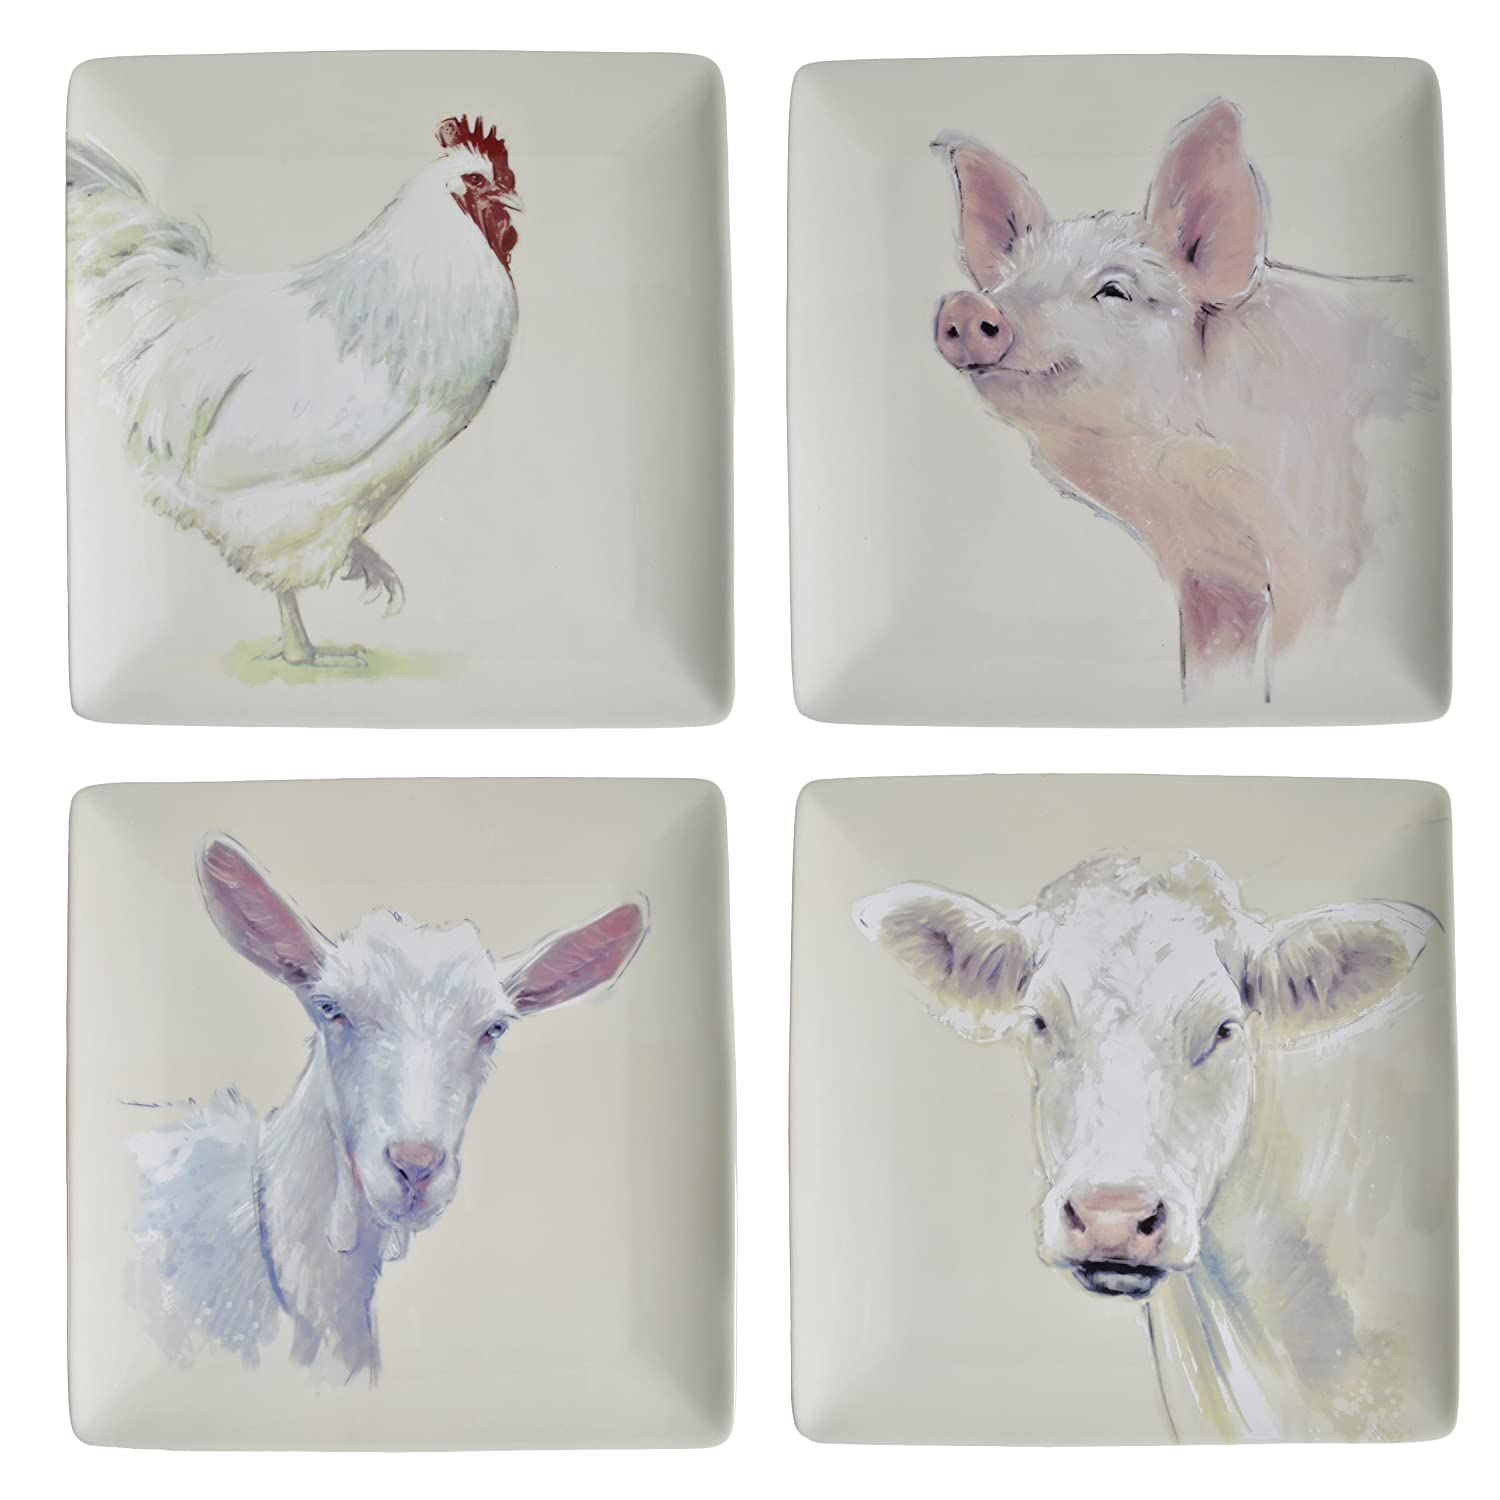 Square Farm Animal Plates (Set of 4) by Creative Co-op   B01BW5FXO4